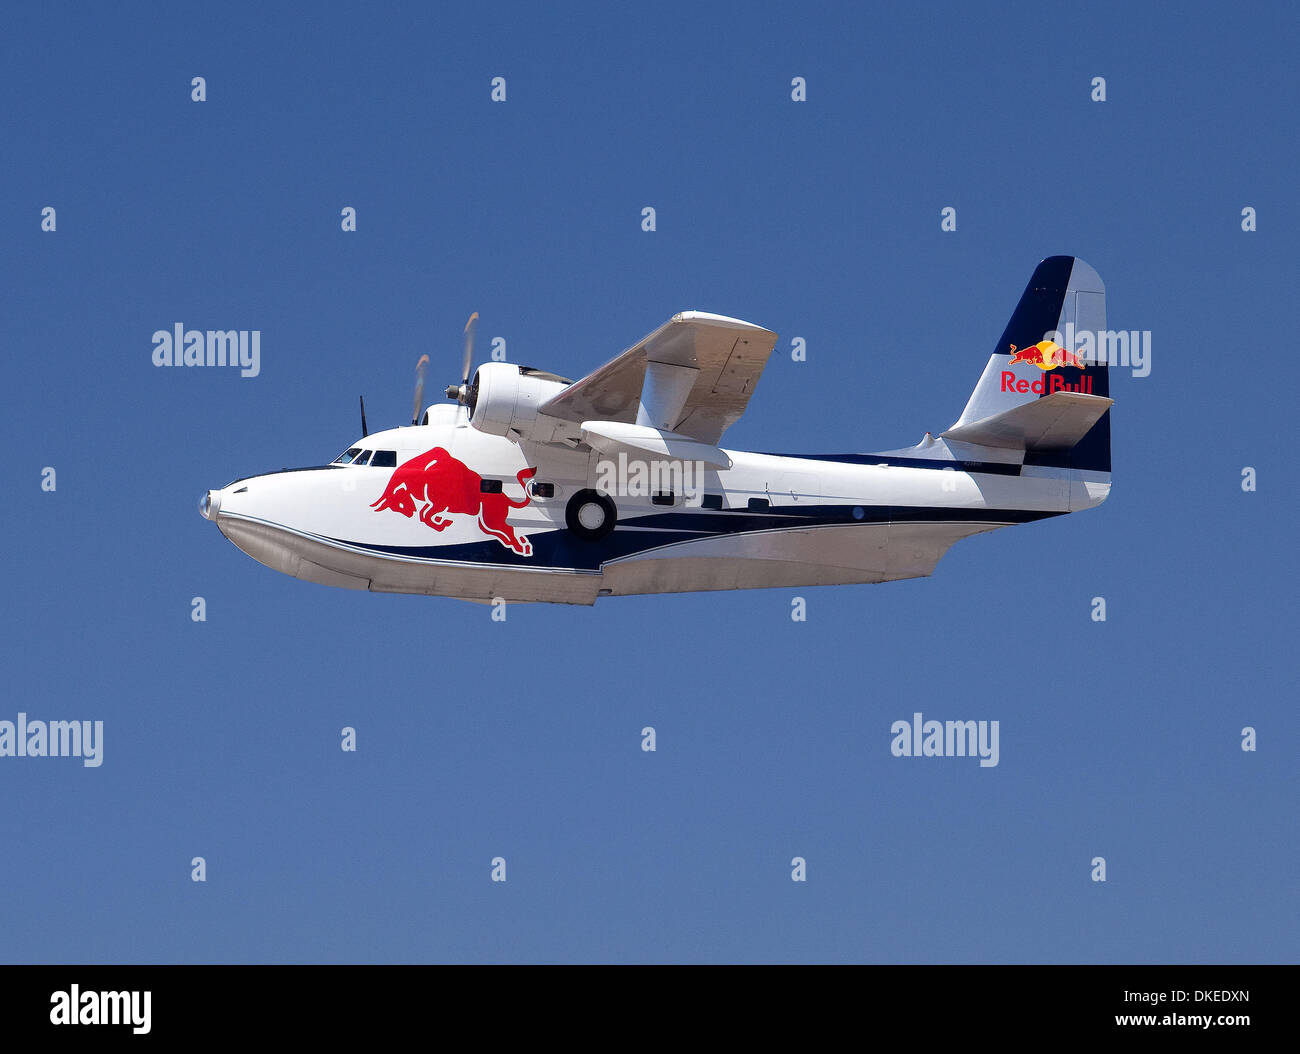 May 10, 2009 - San Diego, California, USA - Red Bulls grumman albatross at the Red Bull Air Race San Diego. (Credit Stock Photo